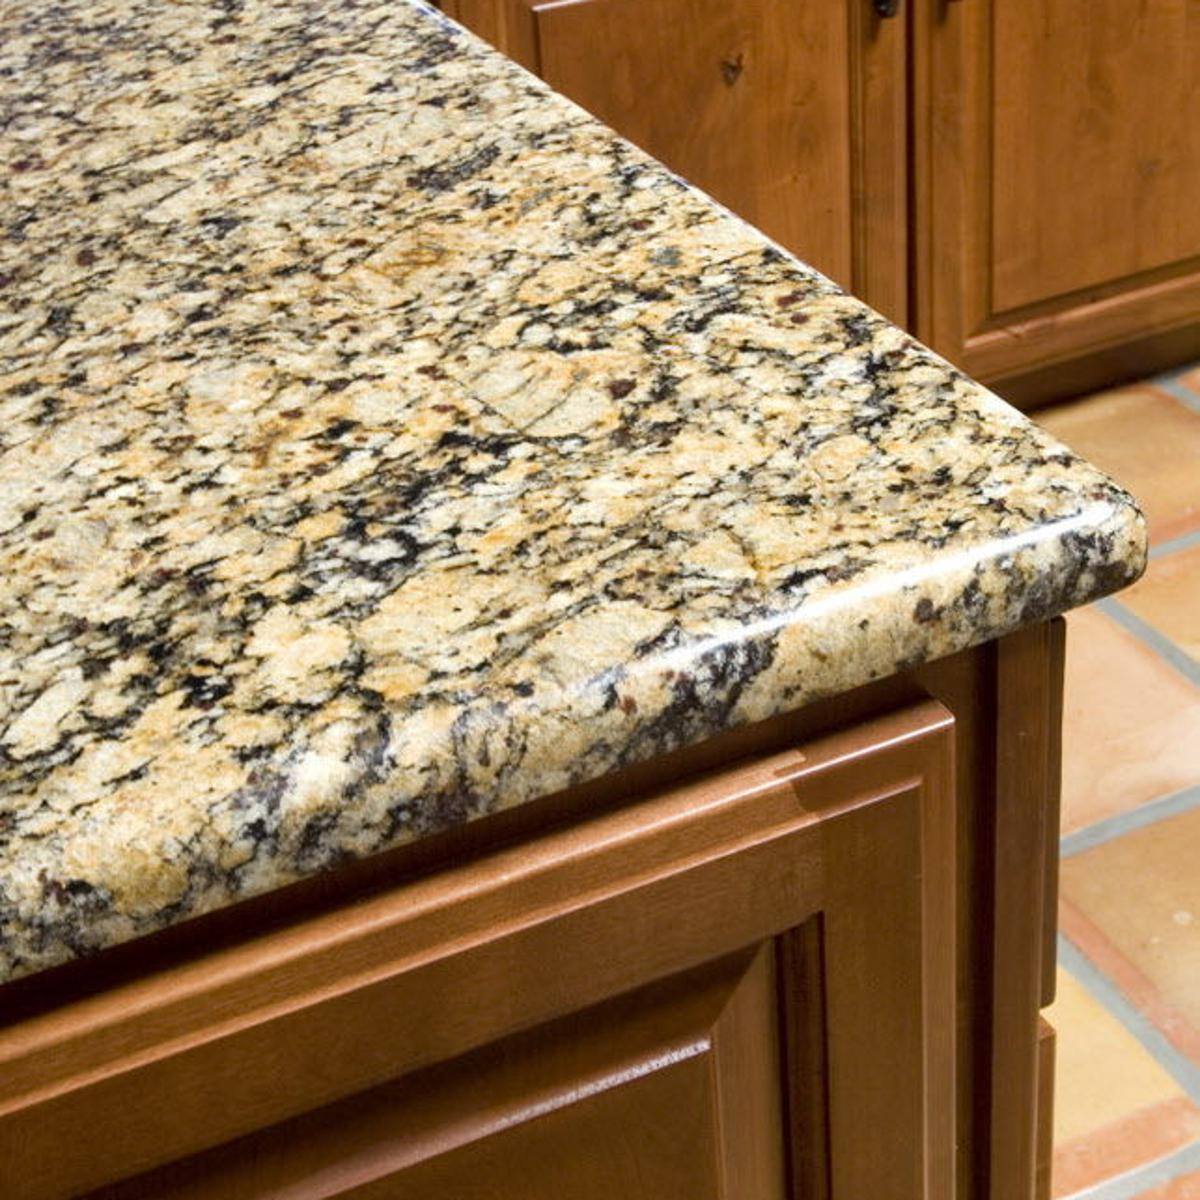 Refinishing Laminate Countertops Tucson Com